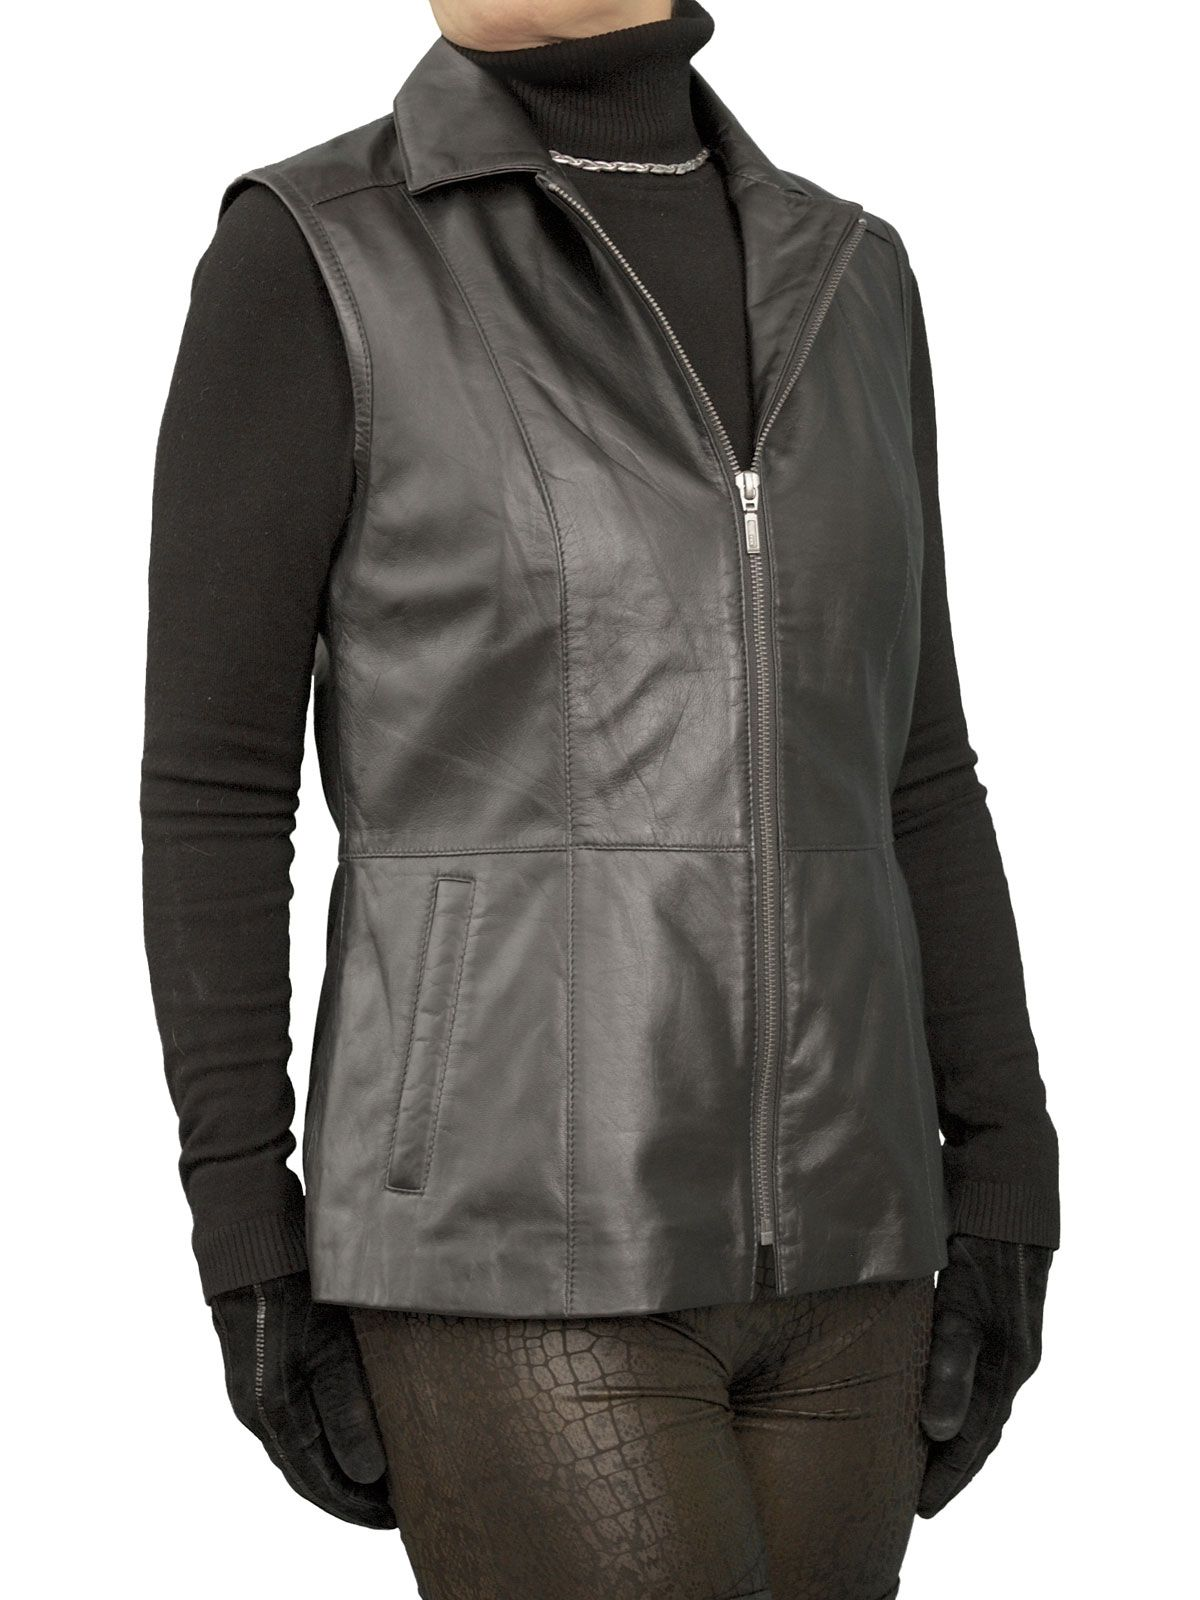 Womens Luxury Soft Black Leather Gilet with standard collar. Just beautiful - made in soft and light lambskin nappa and perfect to wear any time of year.